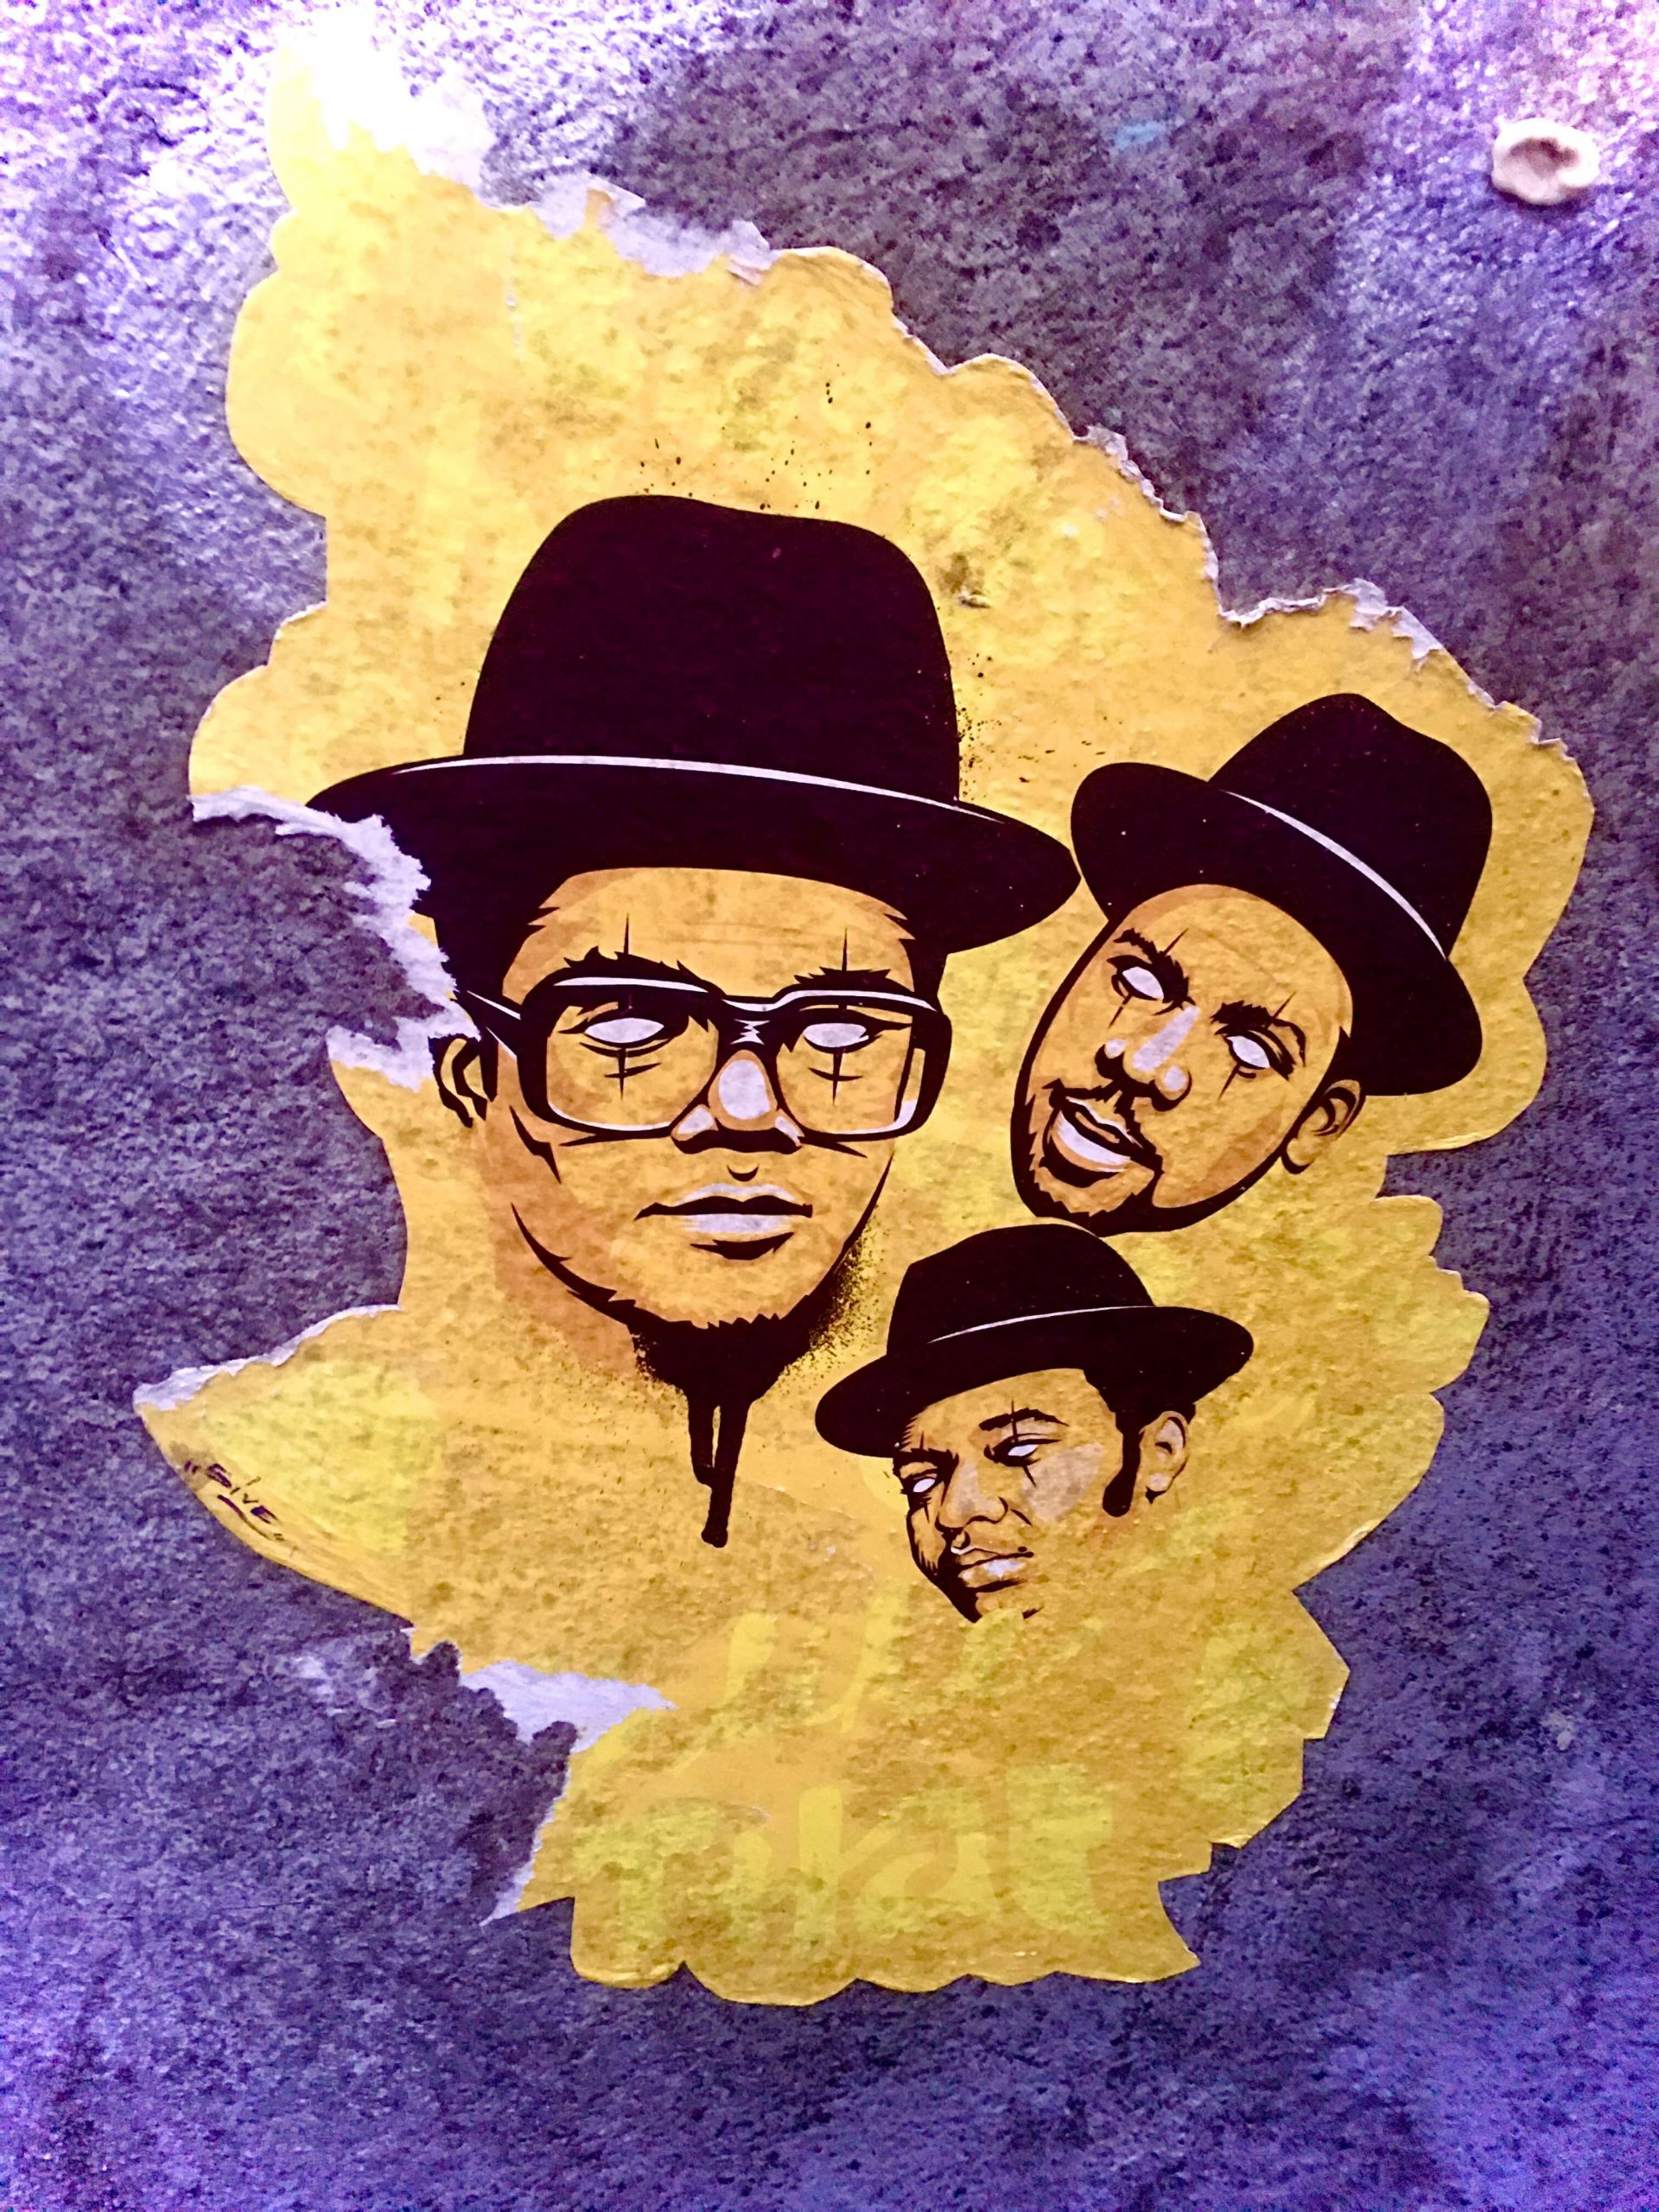 Run DMC wearing black fedoras in a street art piece